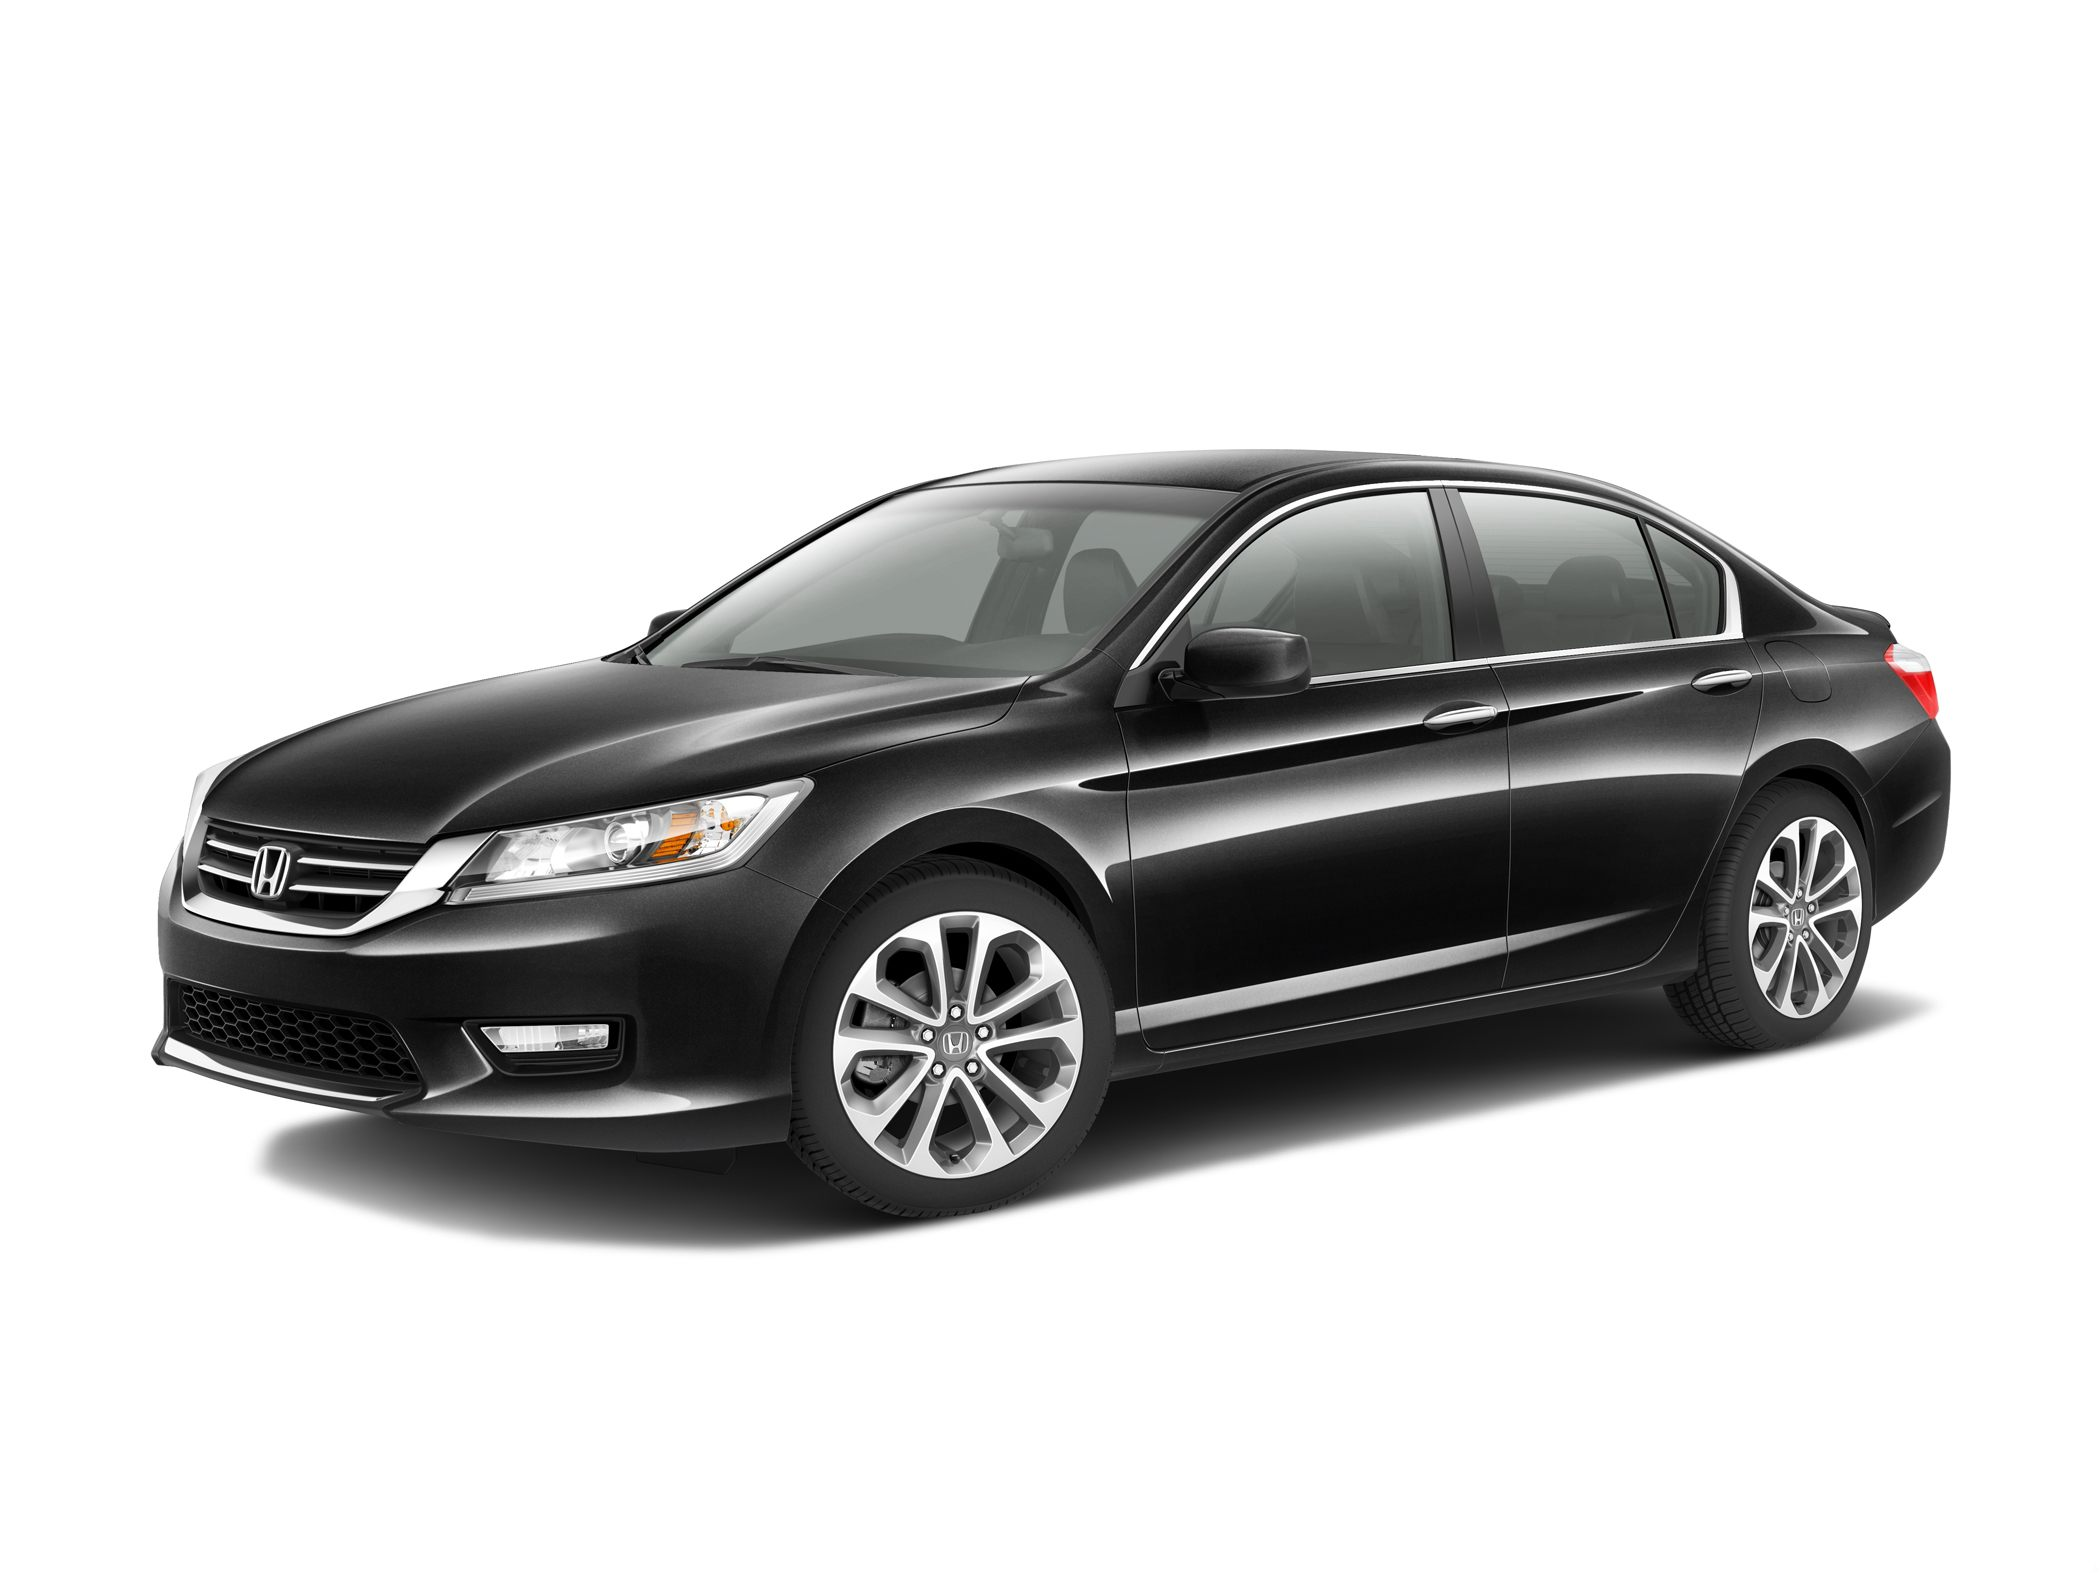 2013 Honda Accord #7